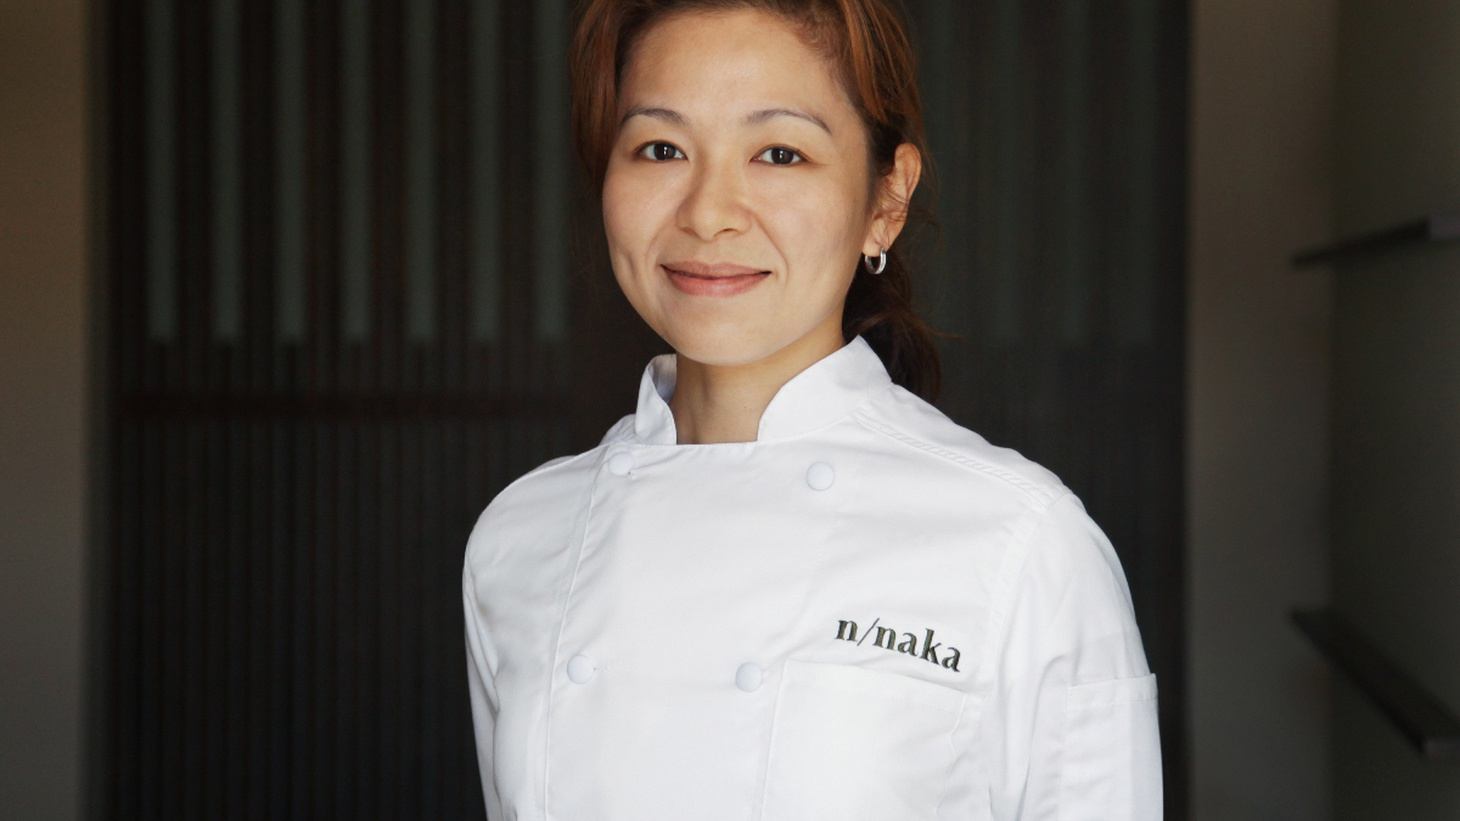 This week, we continue our conversation about food on the screen closer to home, in Los Angeles. Chef Niki Nakayama discusses how life has changed since being featured on the first season of Chef's Table on Netflix. Also on the show: how the pluot was born, Sichuan food in the SGV, the Lone Star State's many styles of BBQ, taking over the tap at LA Beer Week and vegan baking tips from a teen.